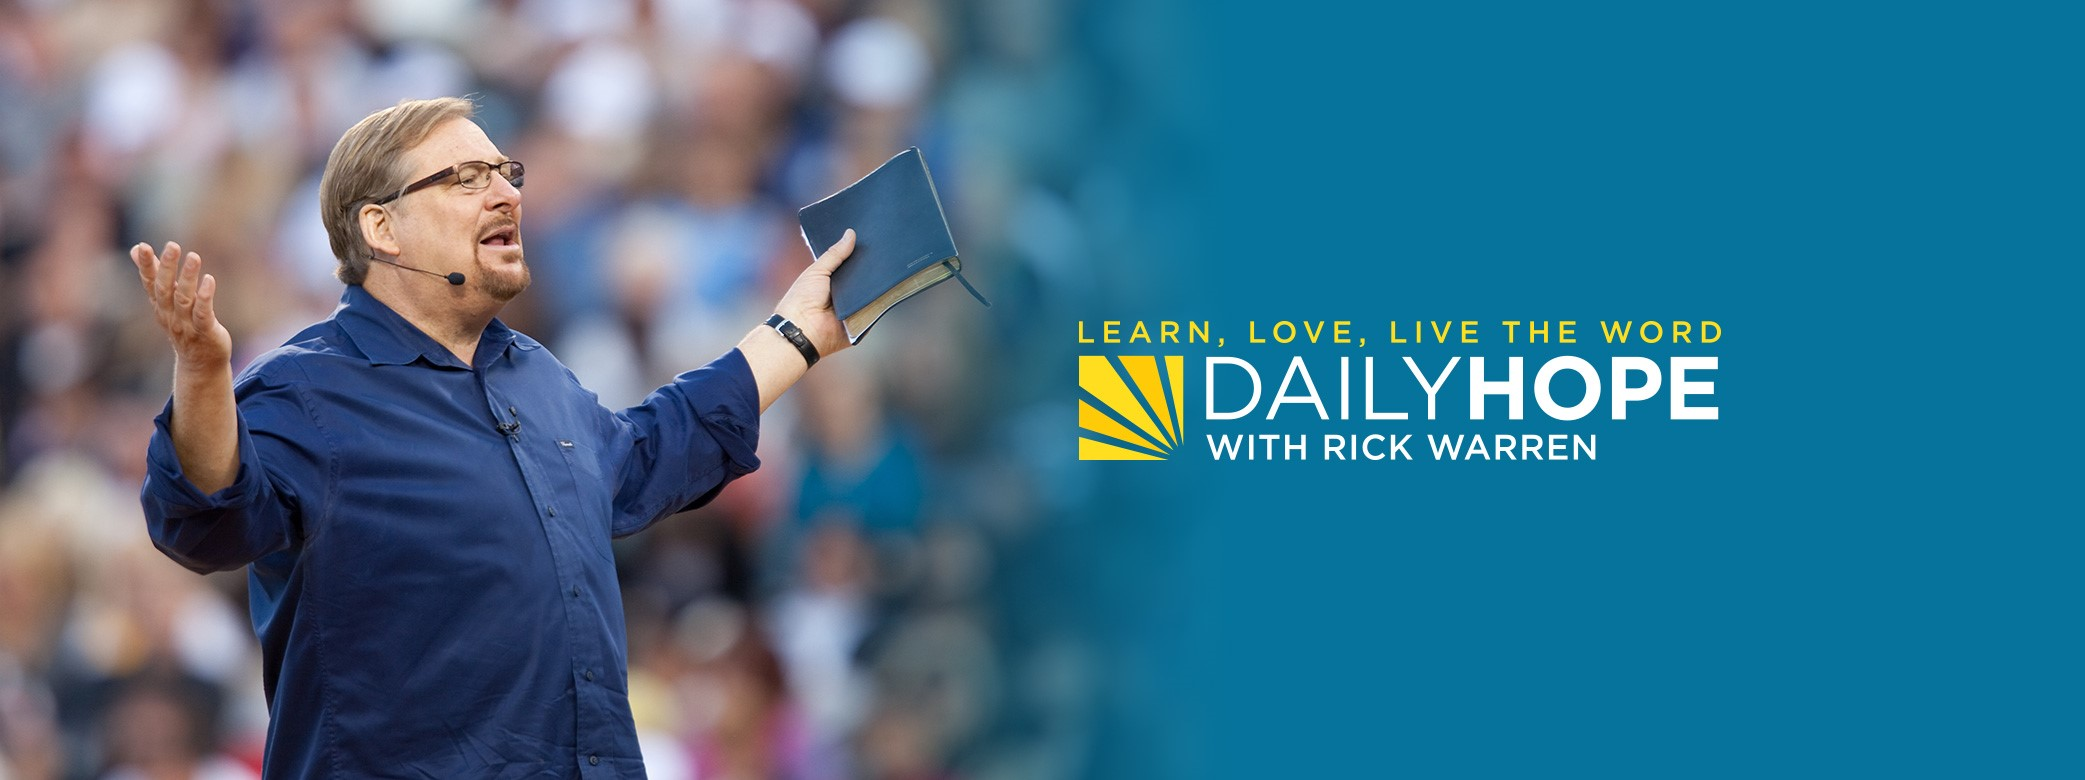 Daily Hope with Rick Warren 29th October 2020, Daily Hope with Rick Warren 29th October 2020 – It's Time to Start Doubting Your Doubts, Premium News24